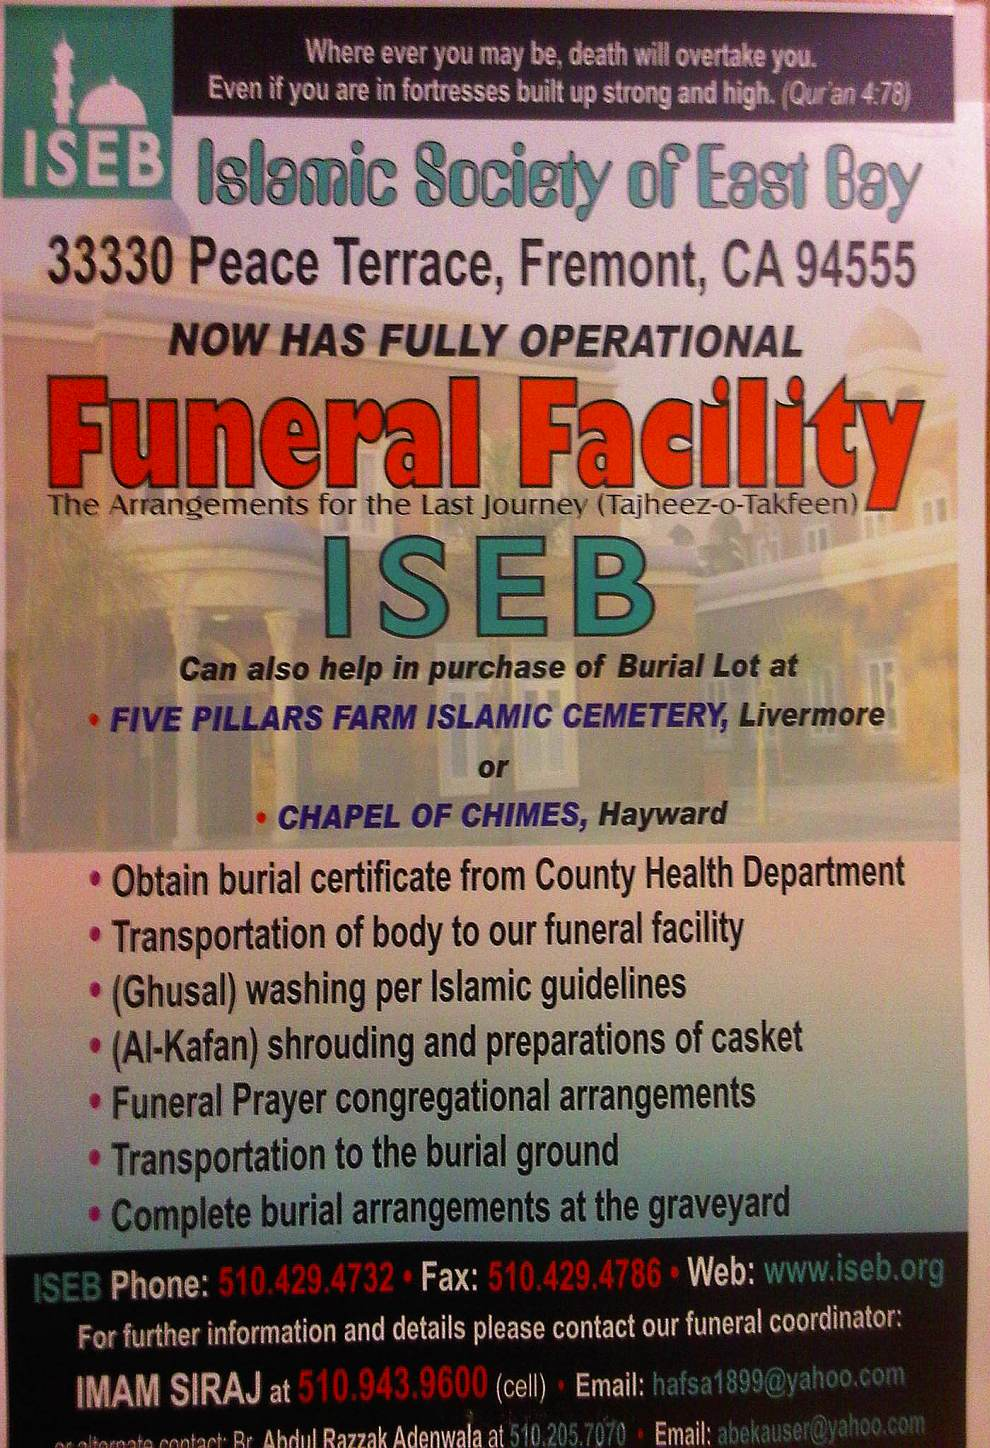 iseb-islamic-society-of-east-bay-funeral-facility-poster-33330-peace-terrace-fremont-california-february-12-2013